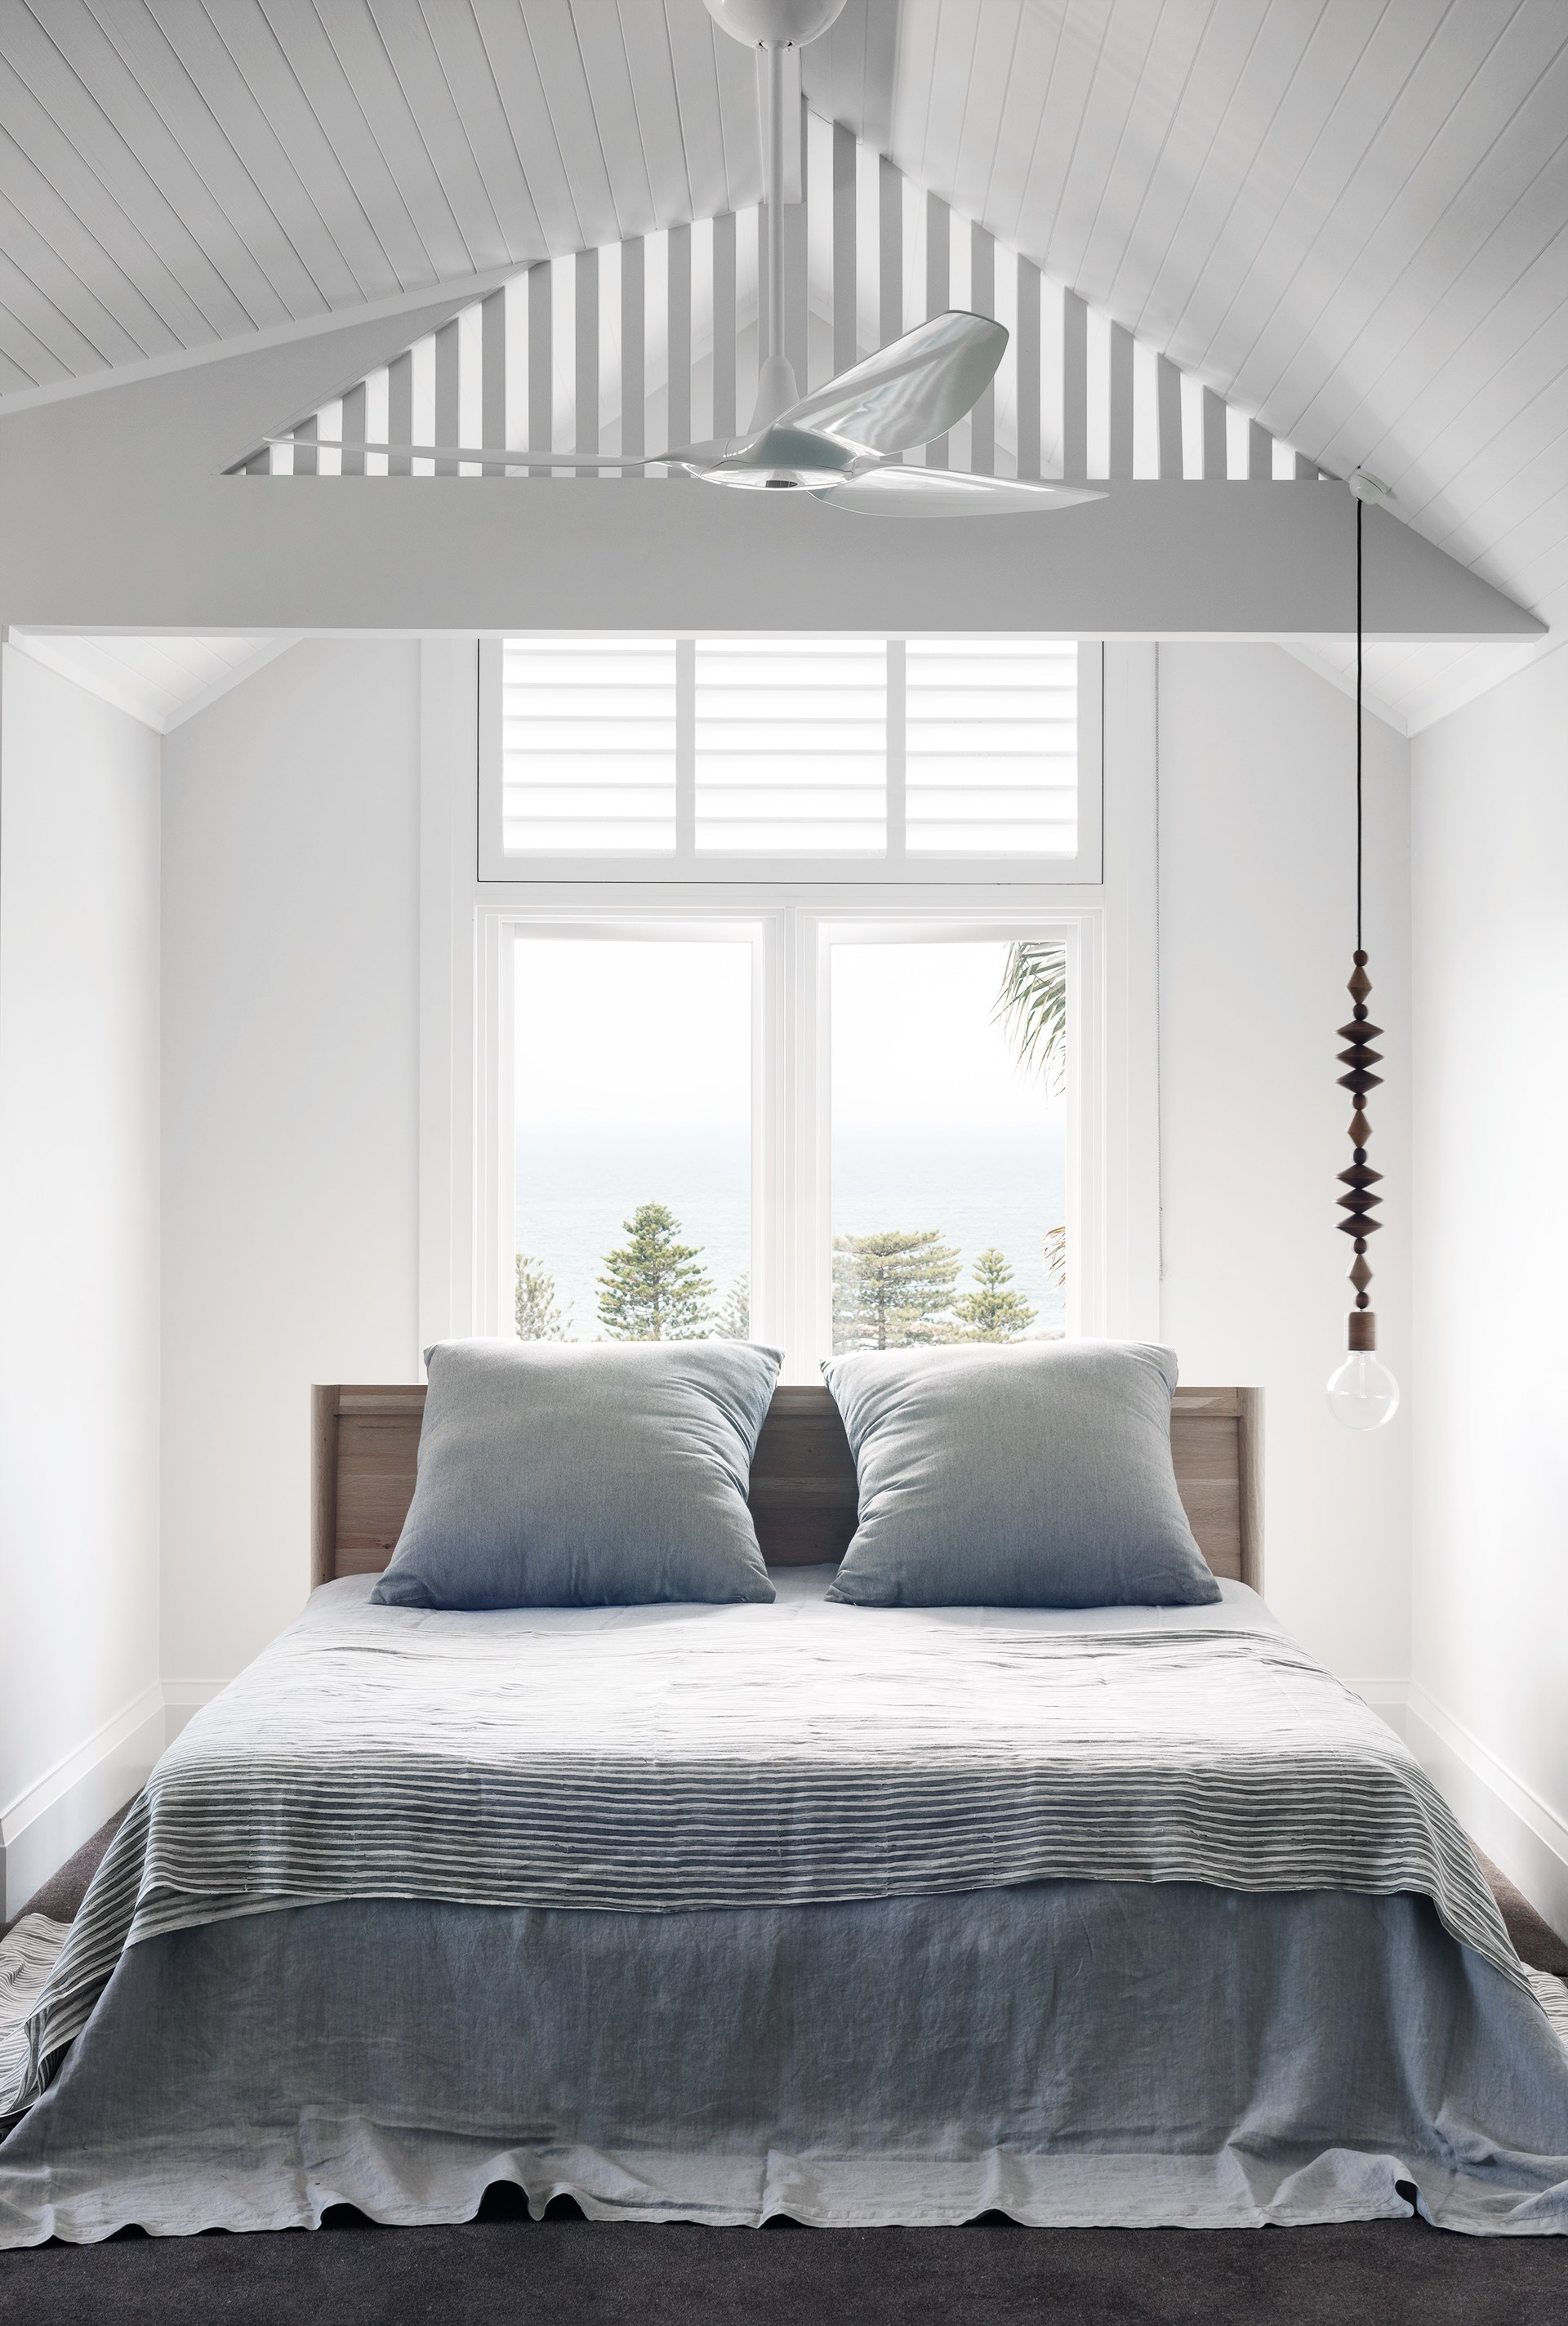 This serene bedroom within a [Palm Beach bungalow](http://www.homestolove.com.au/sandstone-house-restored-to-former-glory-3731) is an excellent example of 'less is more'. *Photo: Nicholas Watt*